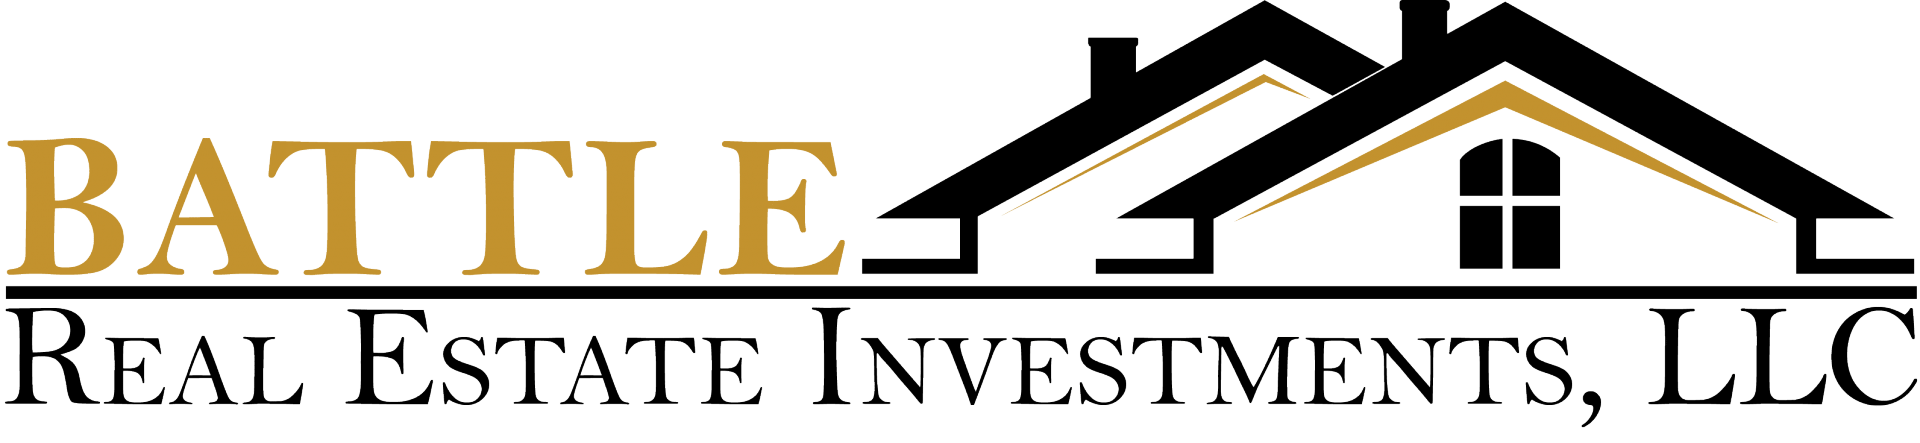 Battle Real Estate Investments, LLC logo